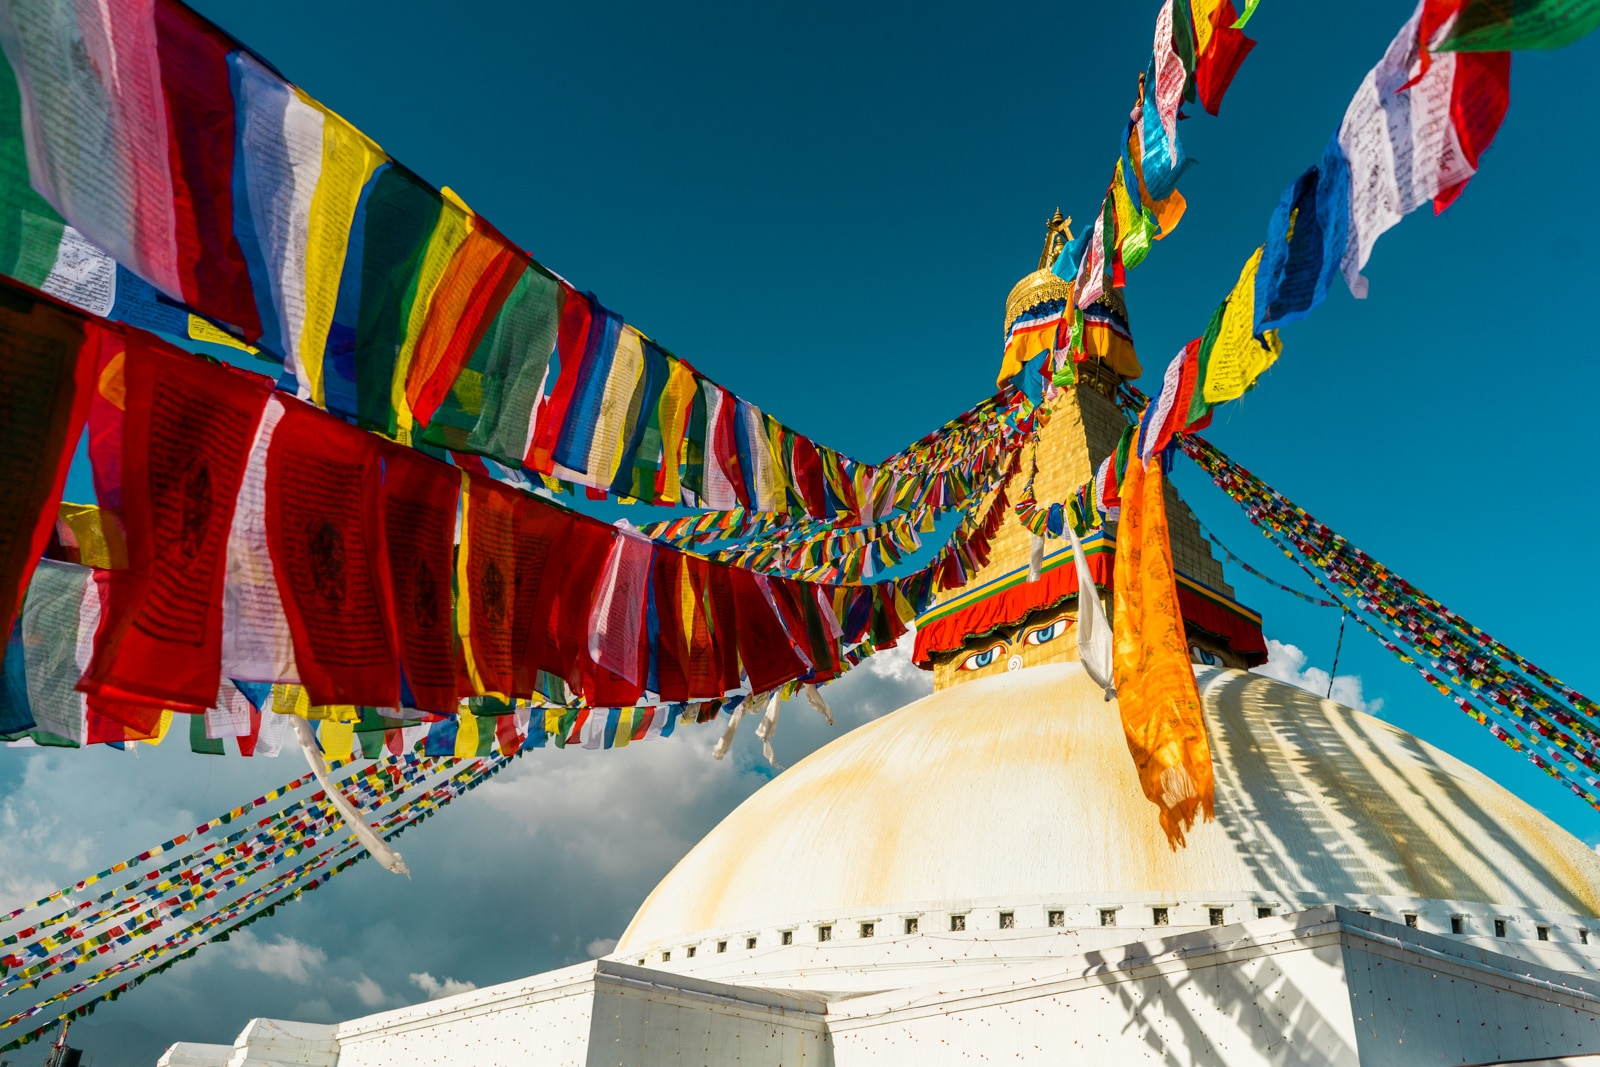 Traveling during monsoon in Nepal - Boudhanath stupa and prayer flags in the sun - Lost With Purpose travel blog